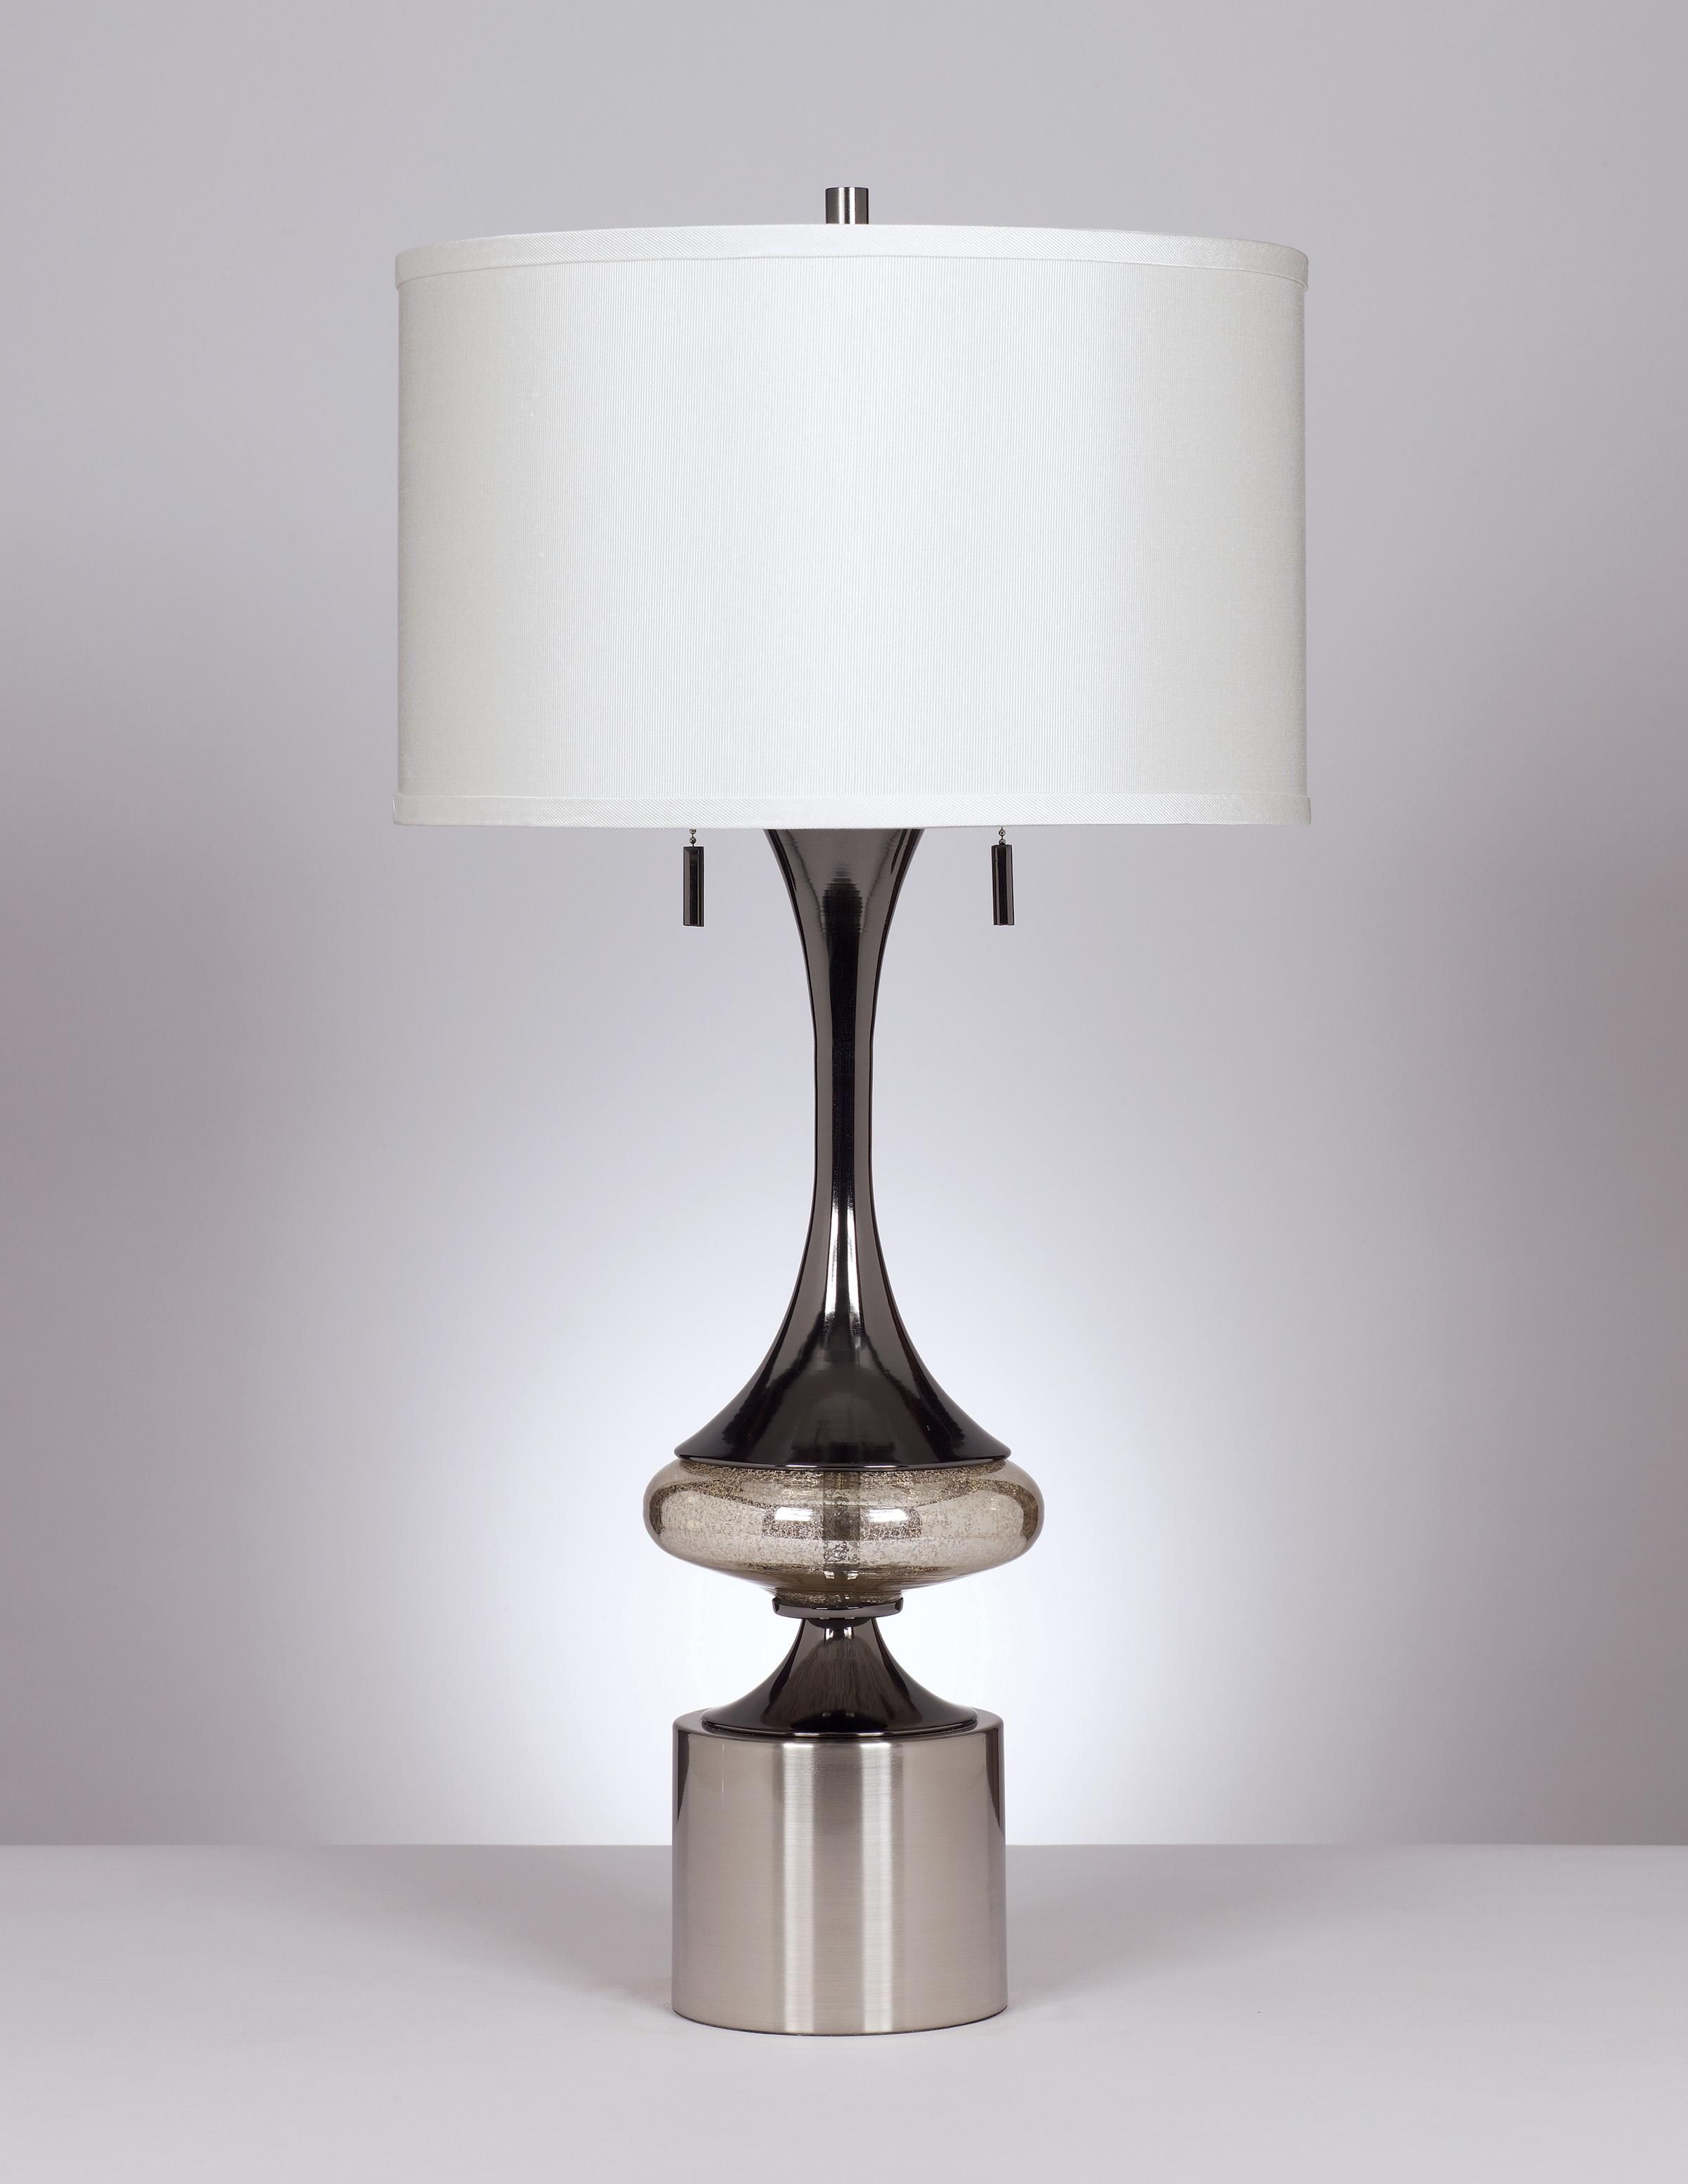 design by ashley furniture lamps contemporary marsha table lamp. Black Bedroom Furniture Sets. Home Design Ideas